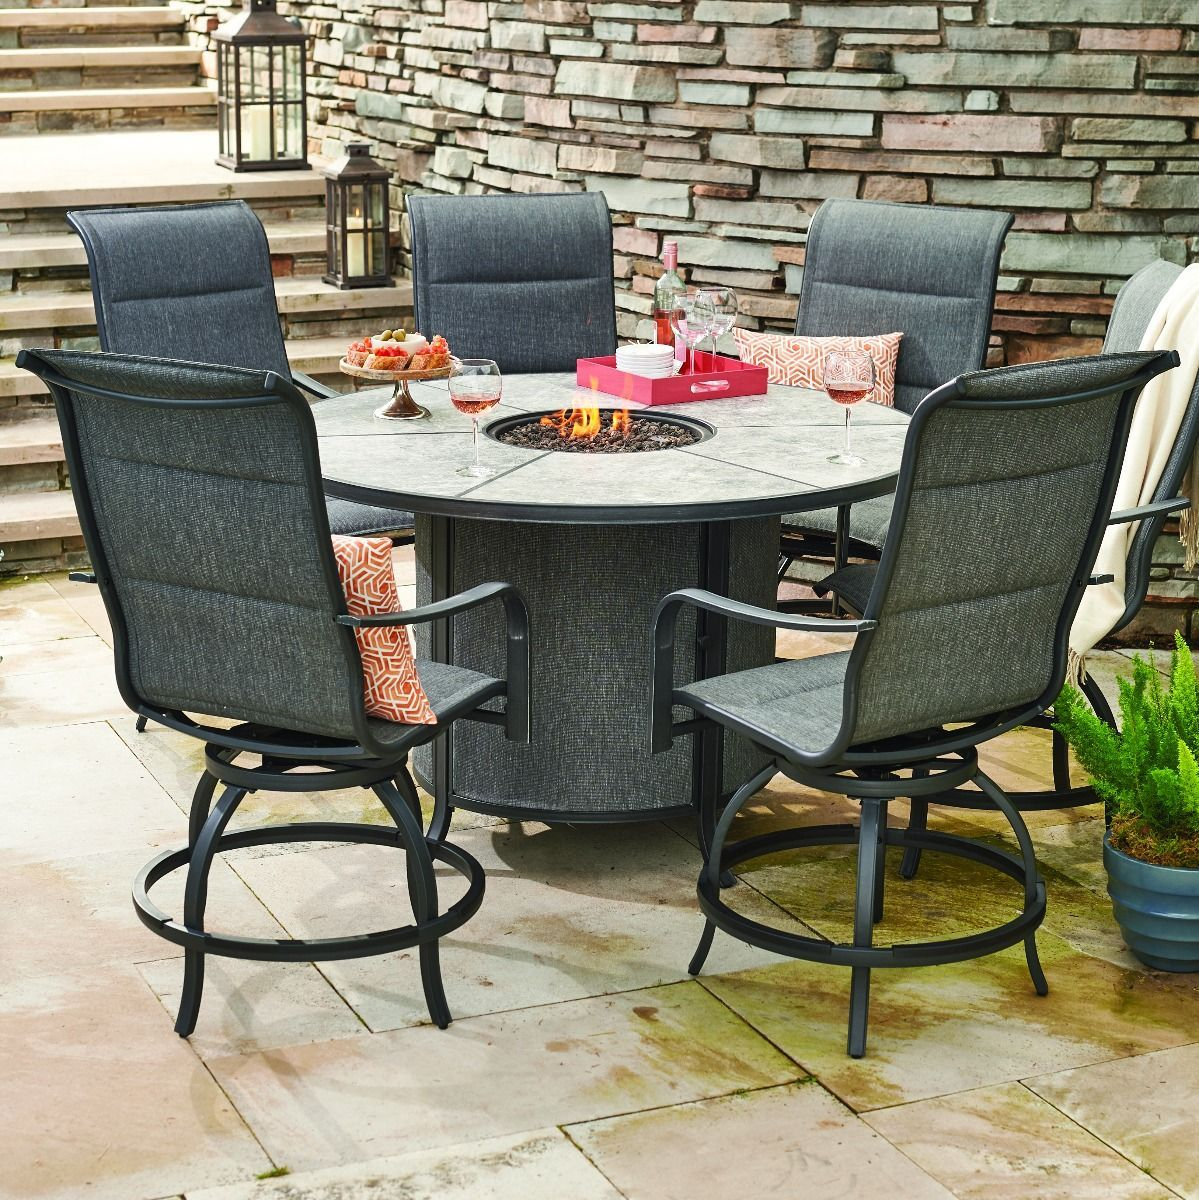 Avellino Fire Pit Counter Height Chair Patio Dining Set True